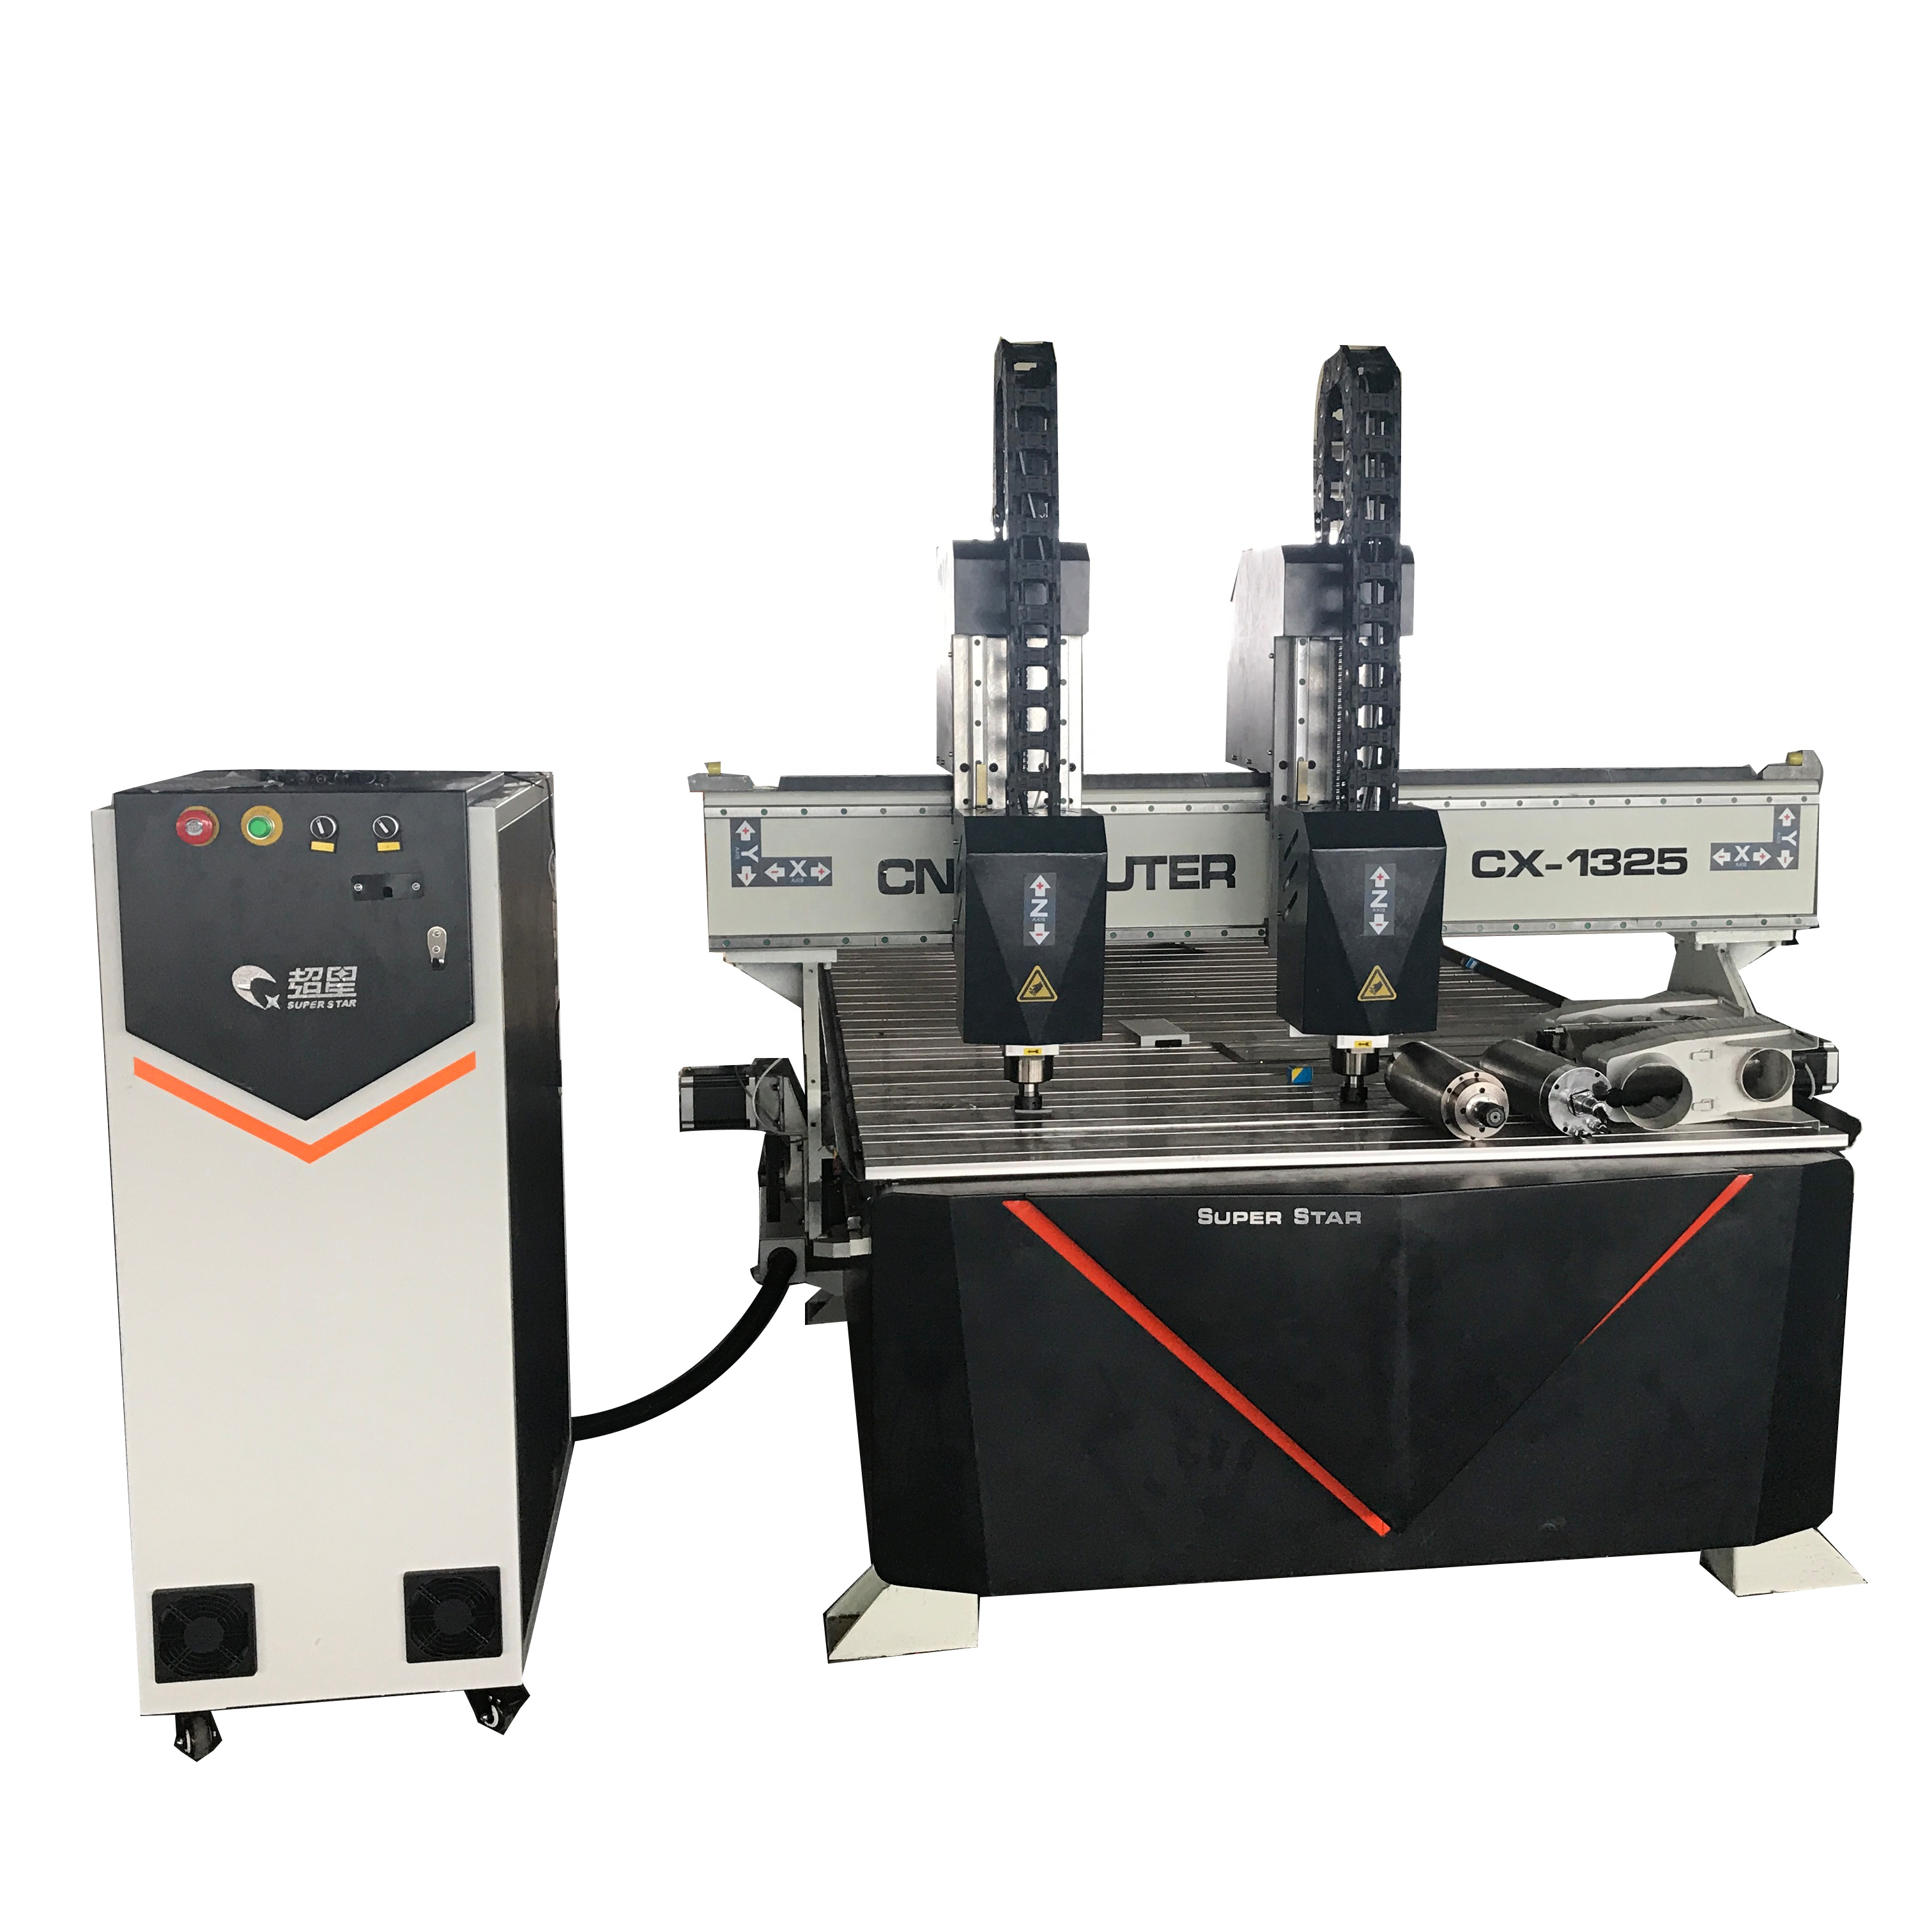 Superstar CNC CX - Double Heads Woodworking Engraving/Cutting Machine